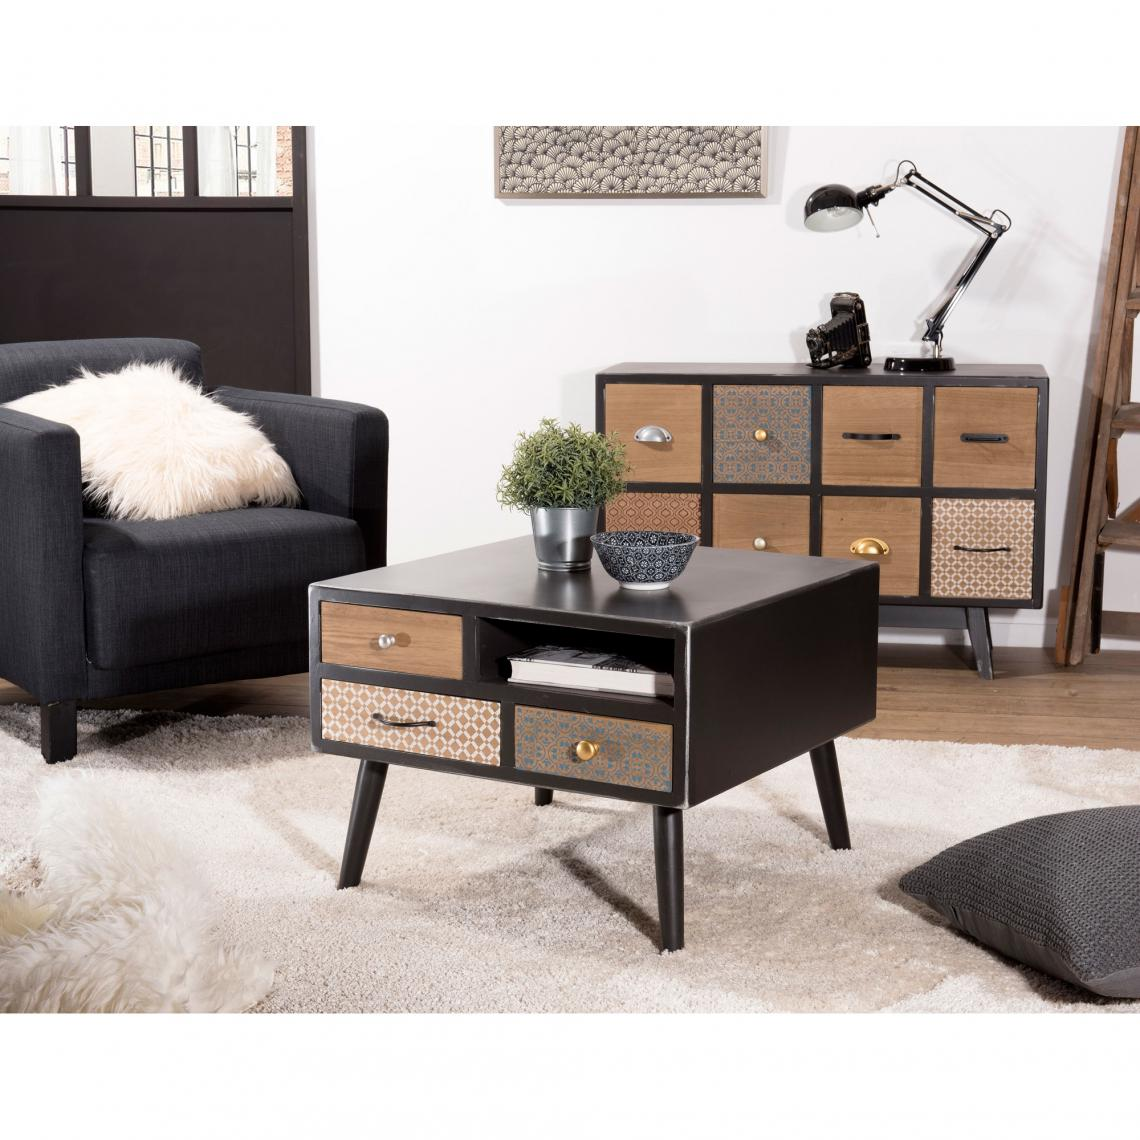 table basse carr e 1 niche 3 tiroirs style scandinave et. Black Bedroom Furniture Sets. Home Design Ideas